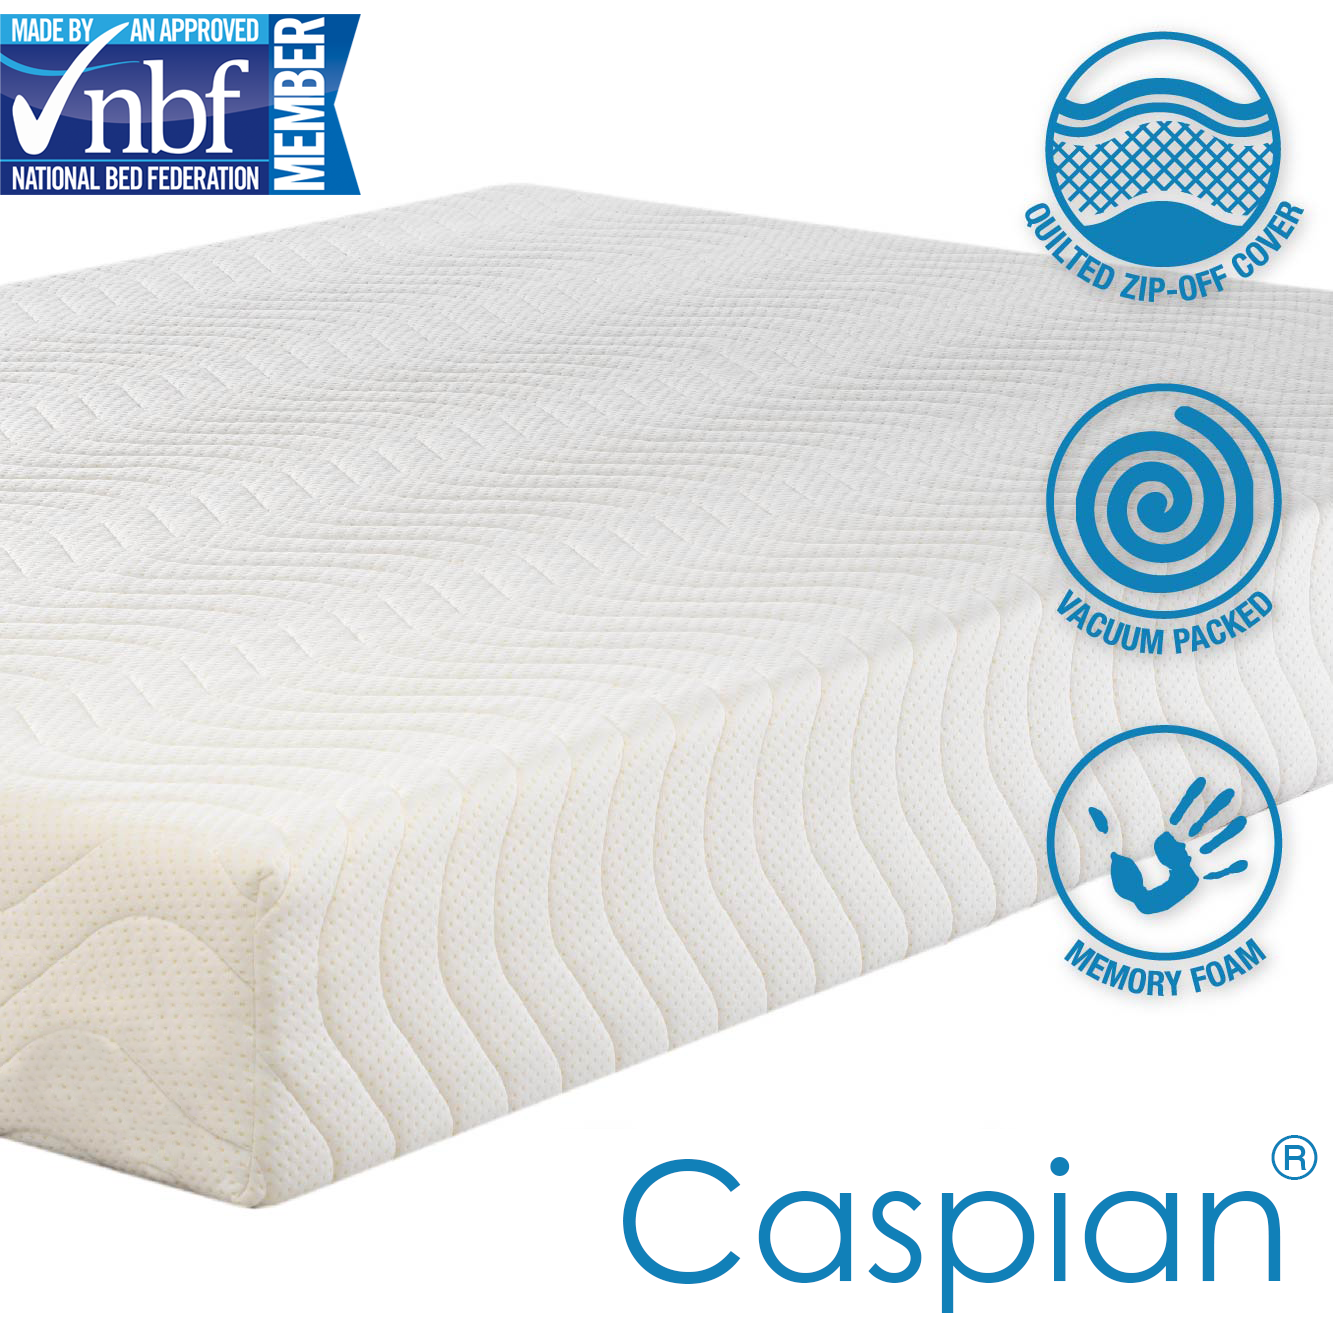 mattress icon png. Caspian® Memory Foam Mattress - Quilted Ortho Cool Hypoallergenic All Sizes NEW Icon Png H